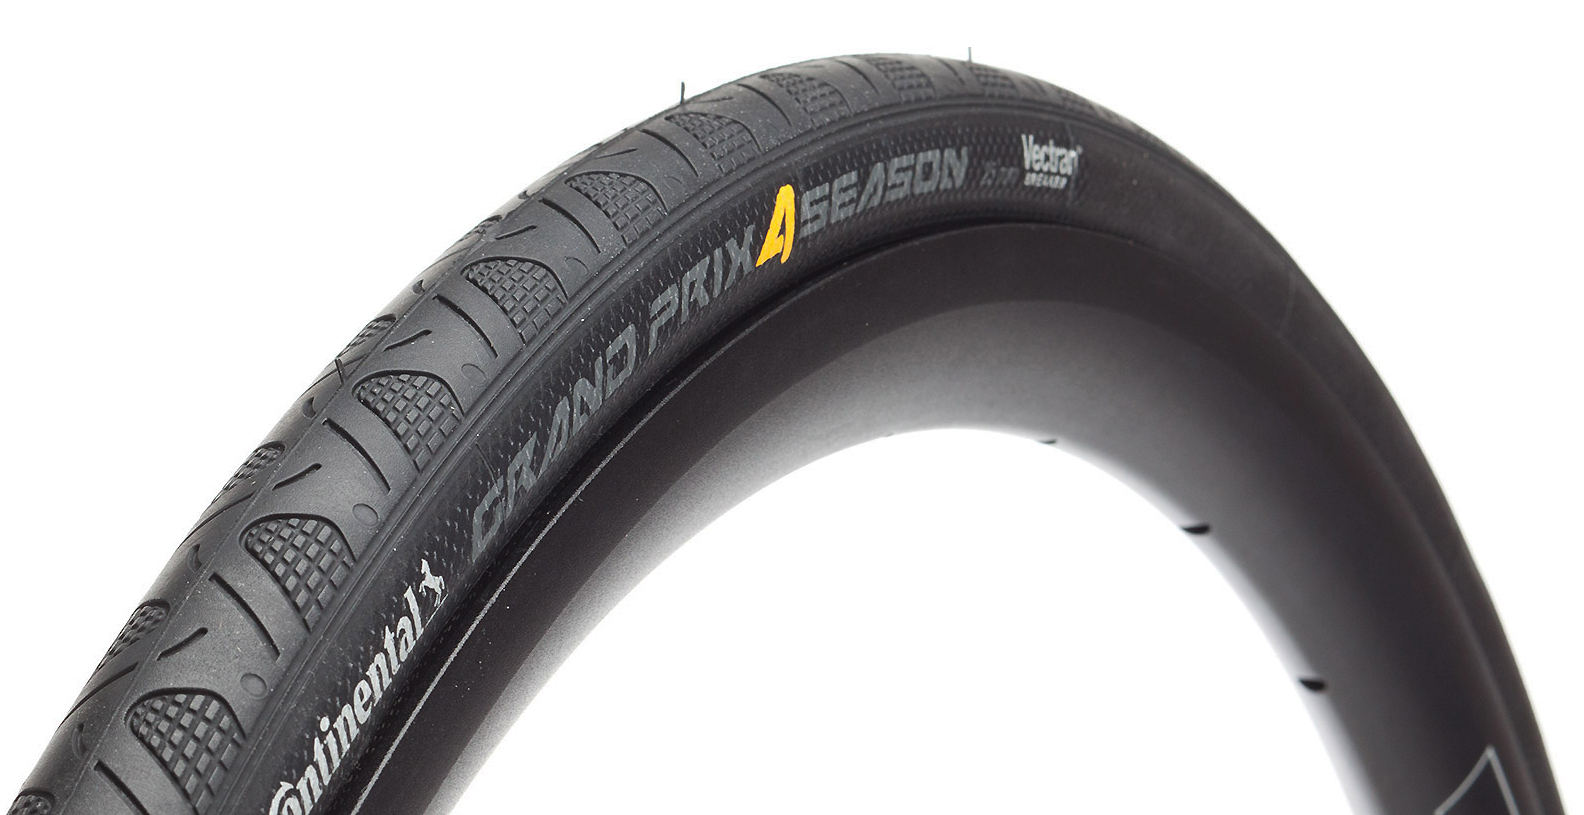 continental grand prix tyre review